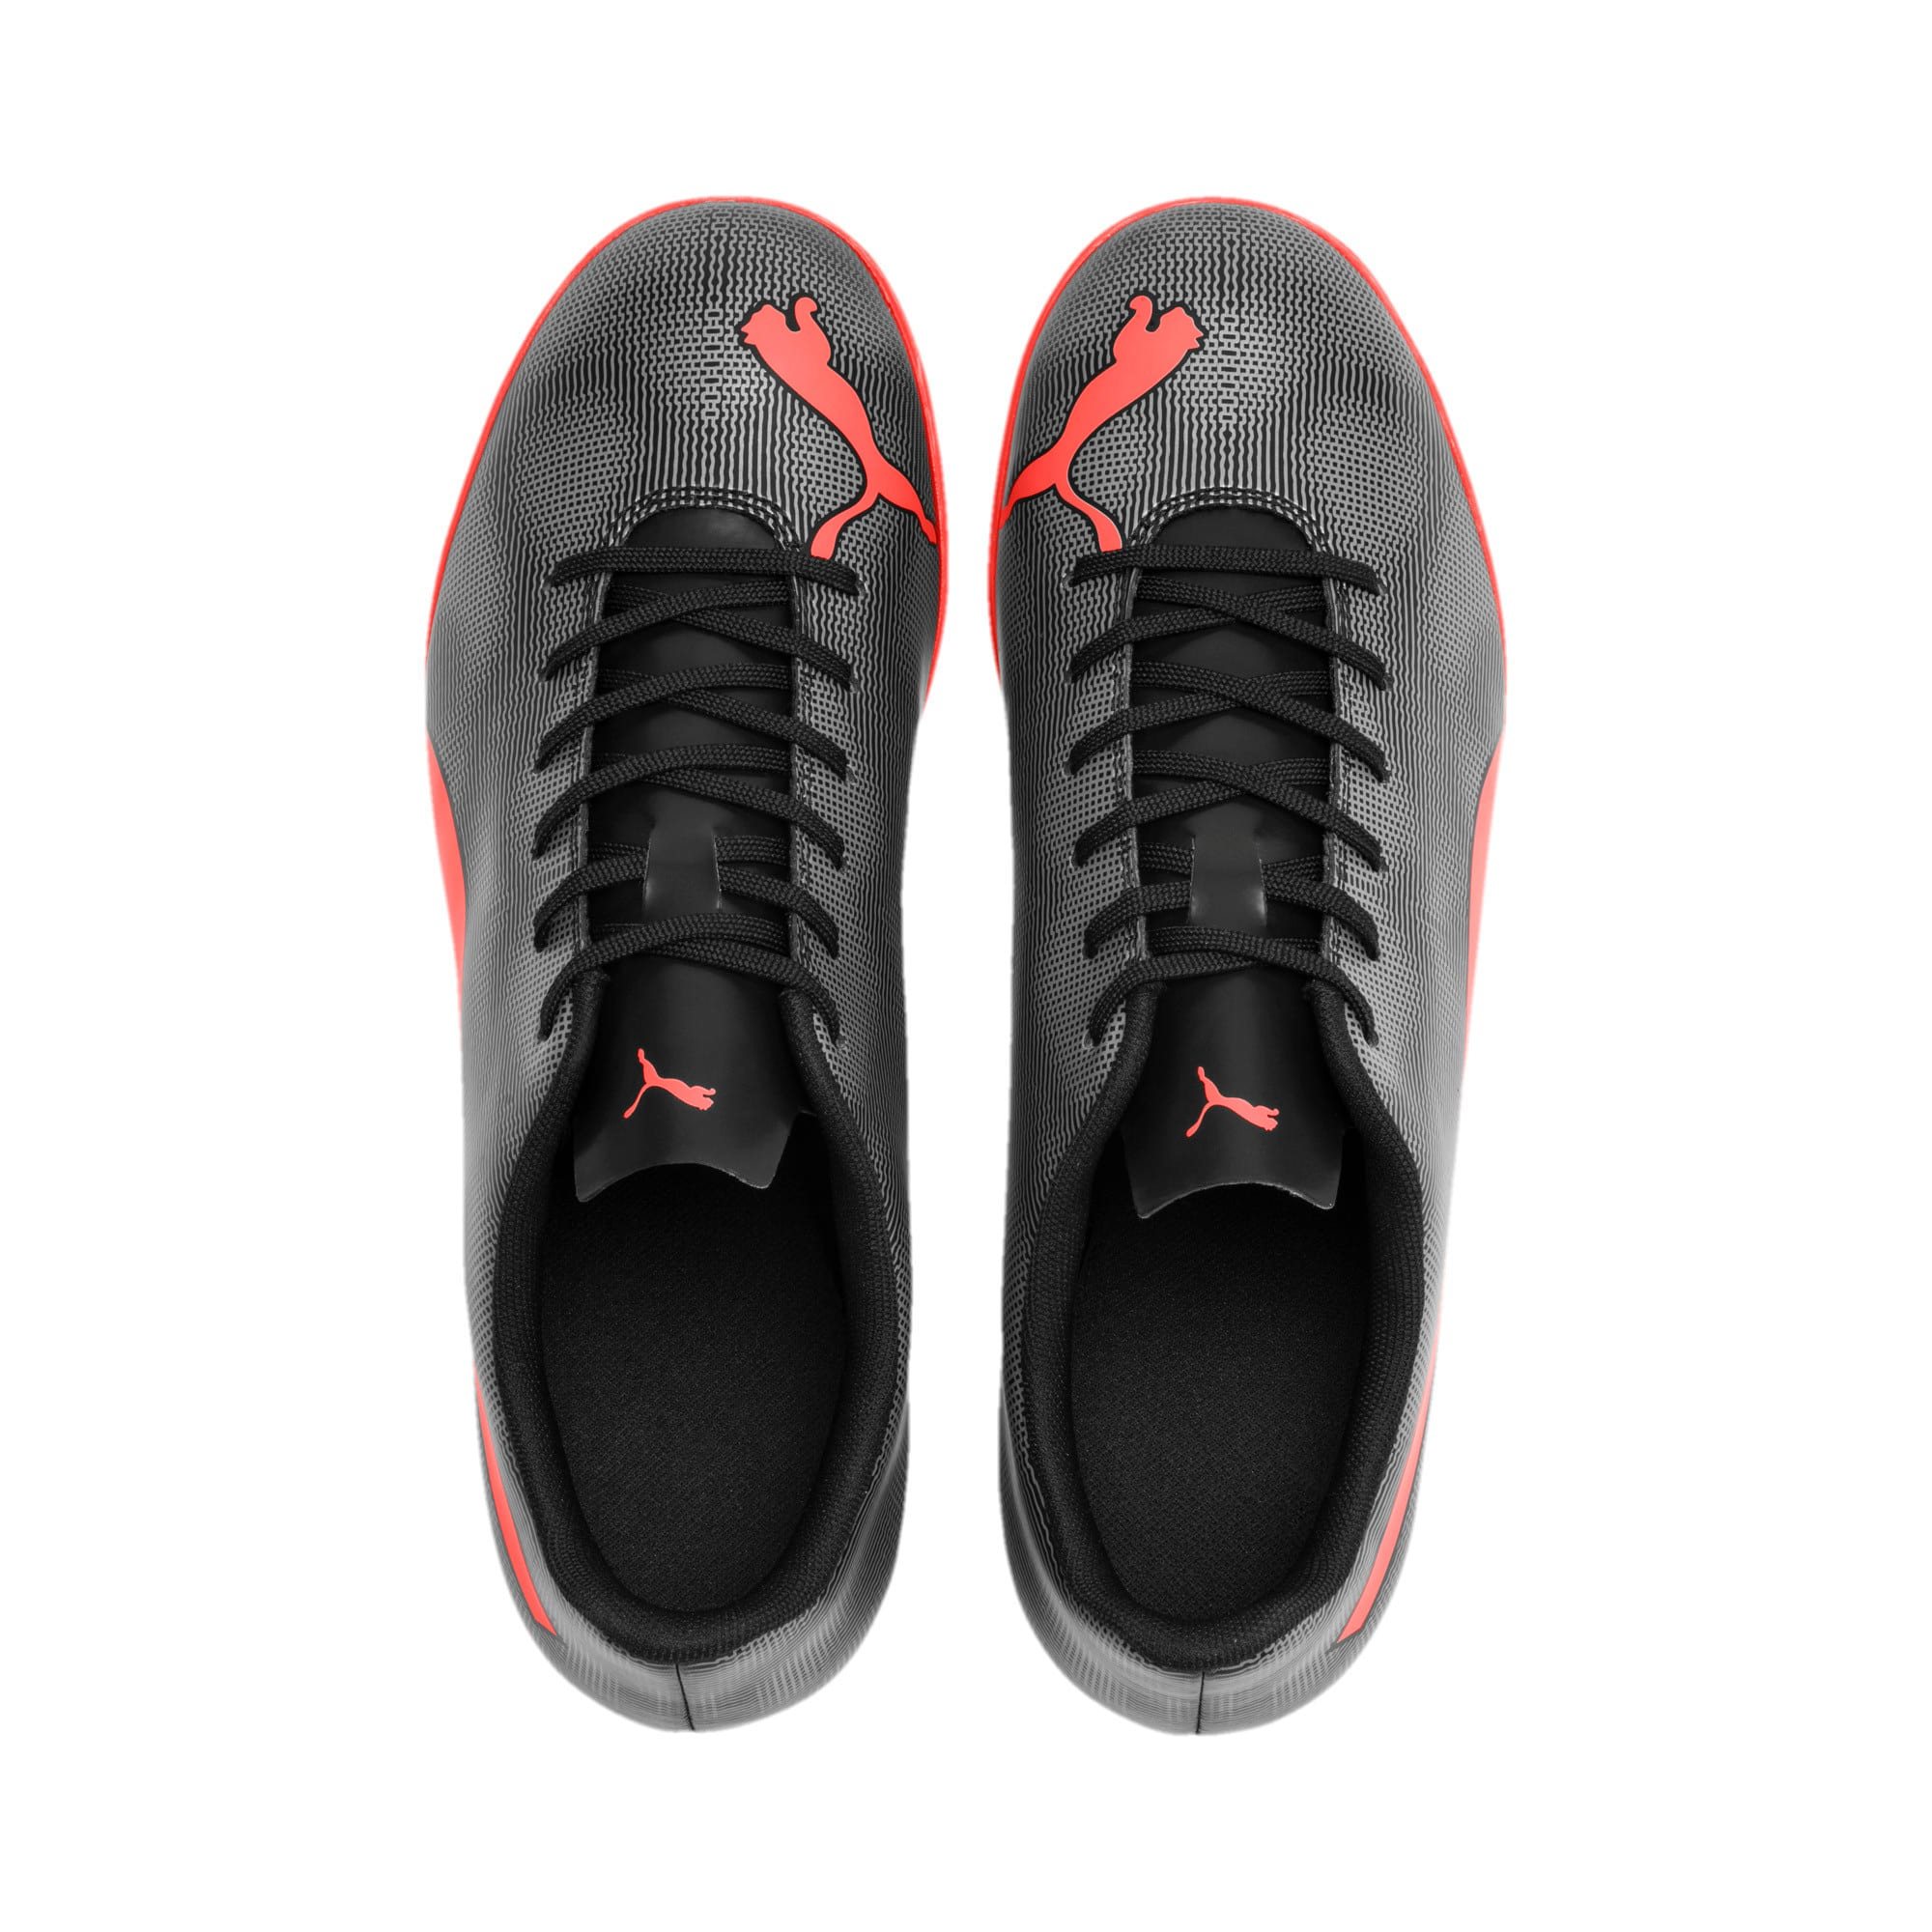 Thumbnail 4 of Rapido TT Men's Football Boots, Black-Nrgy Red-Aged Silver, medium-IND